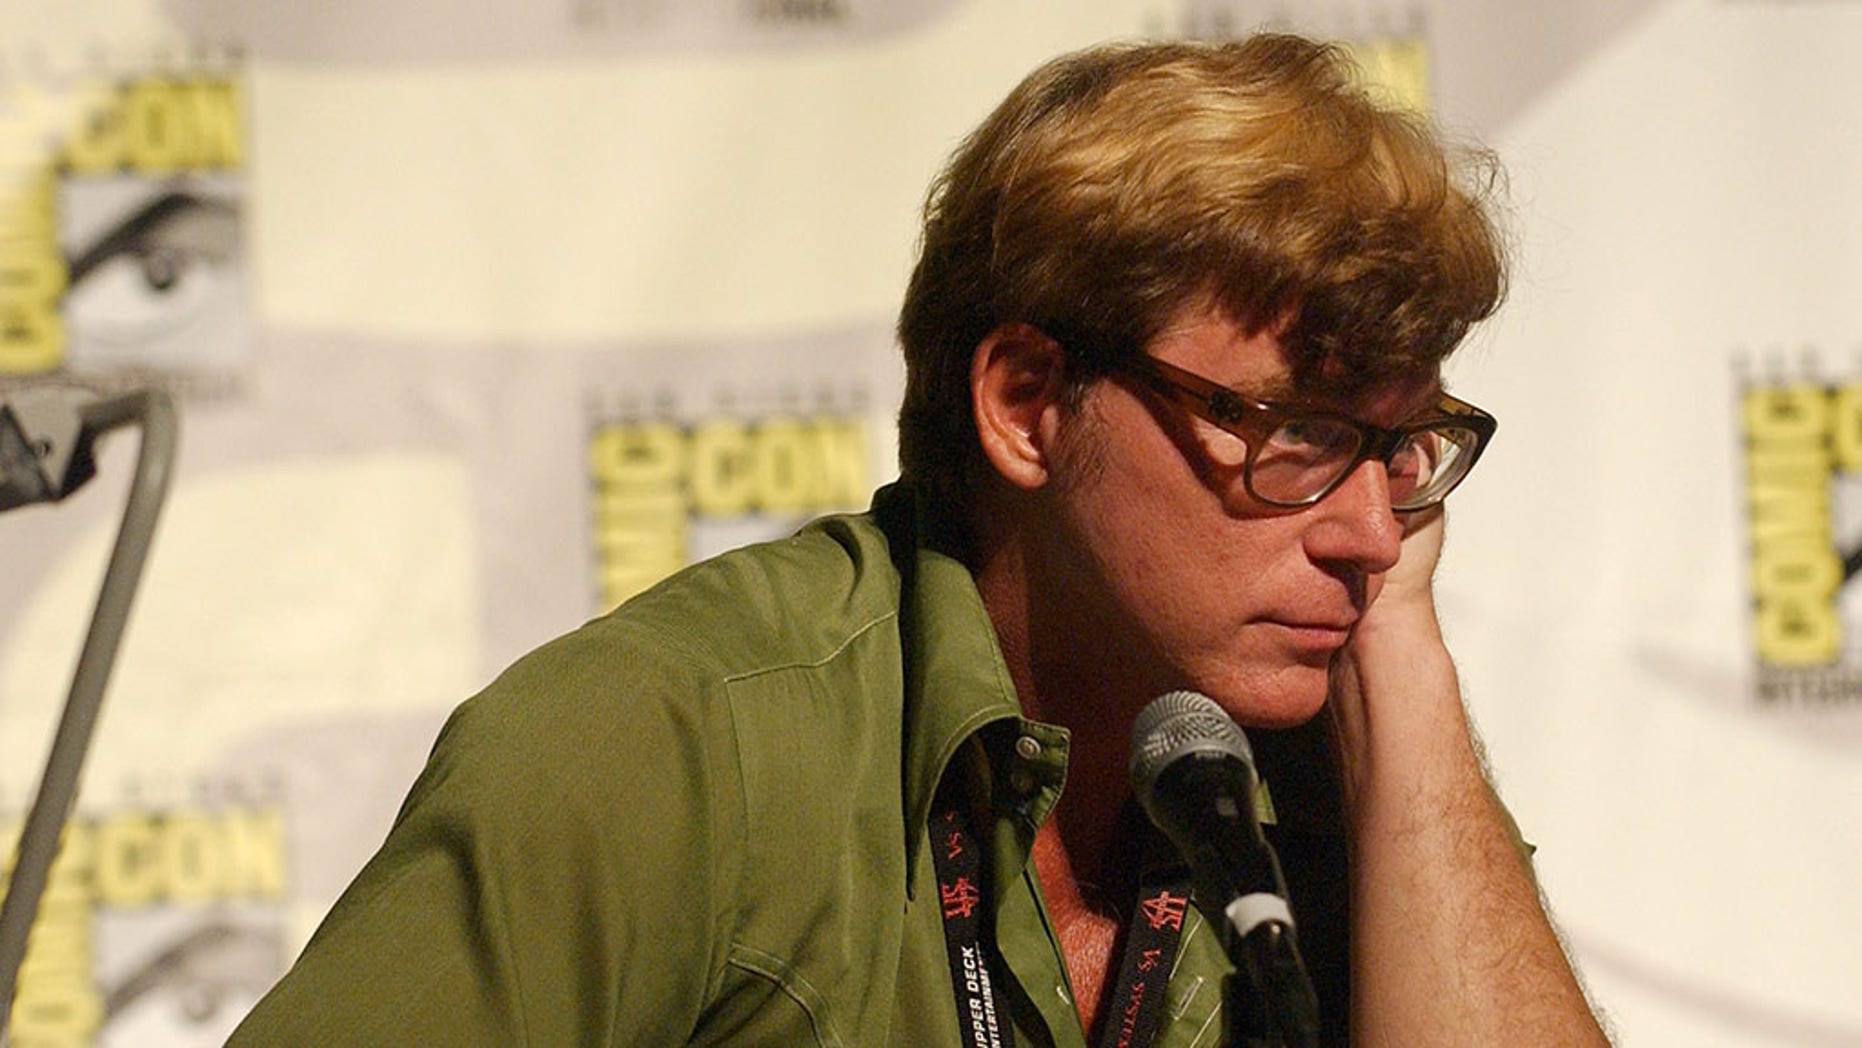 John Kricfalusi, the creator of 'Ren & Stimpy,' is the subject of several sexual misconduct allegations from two women.